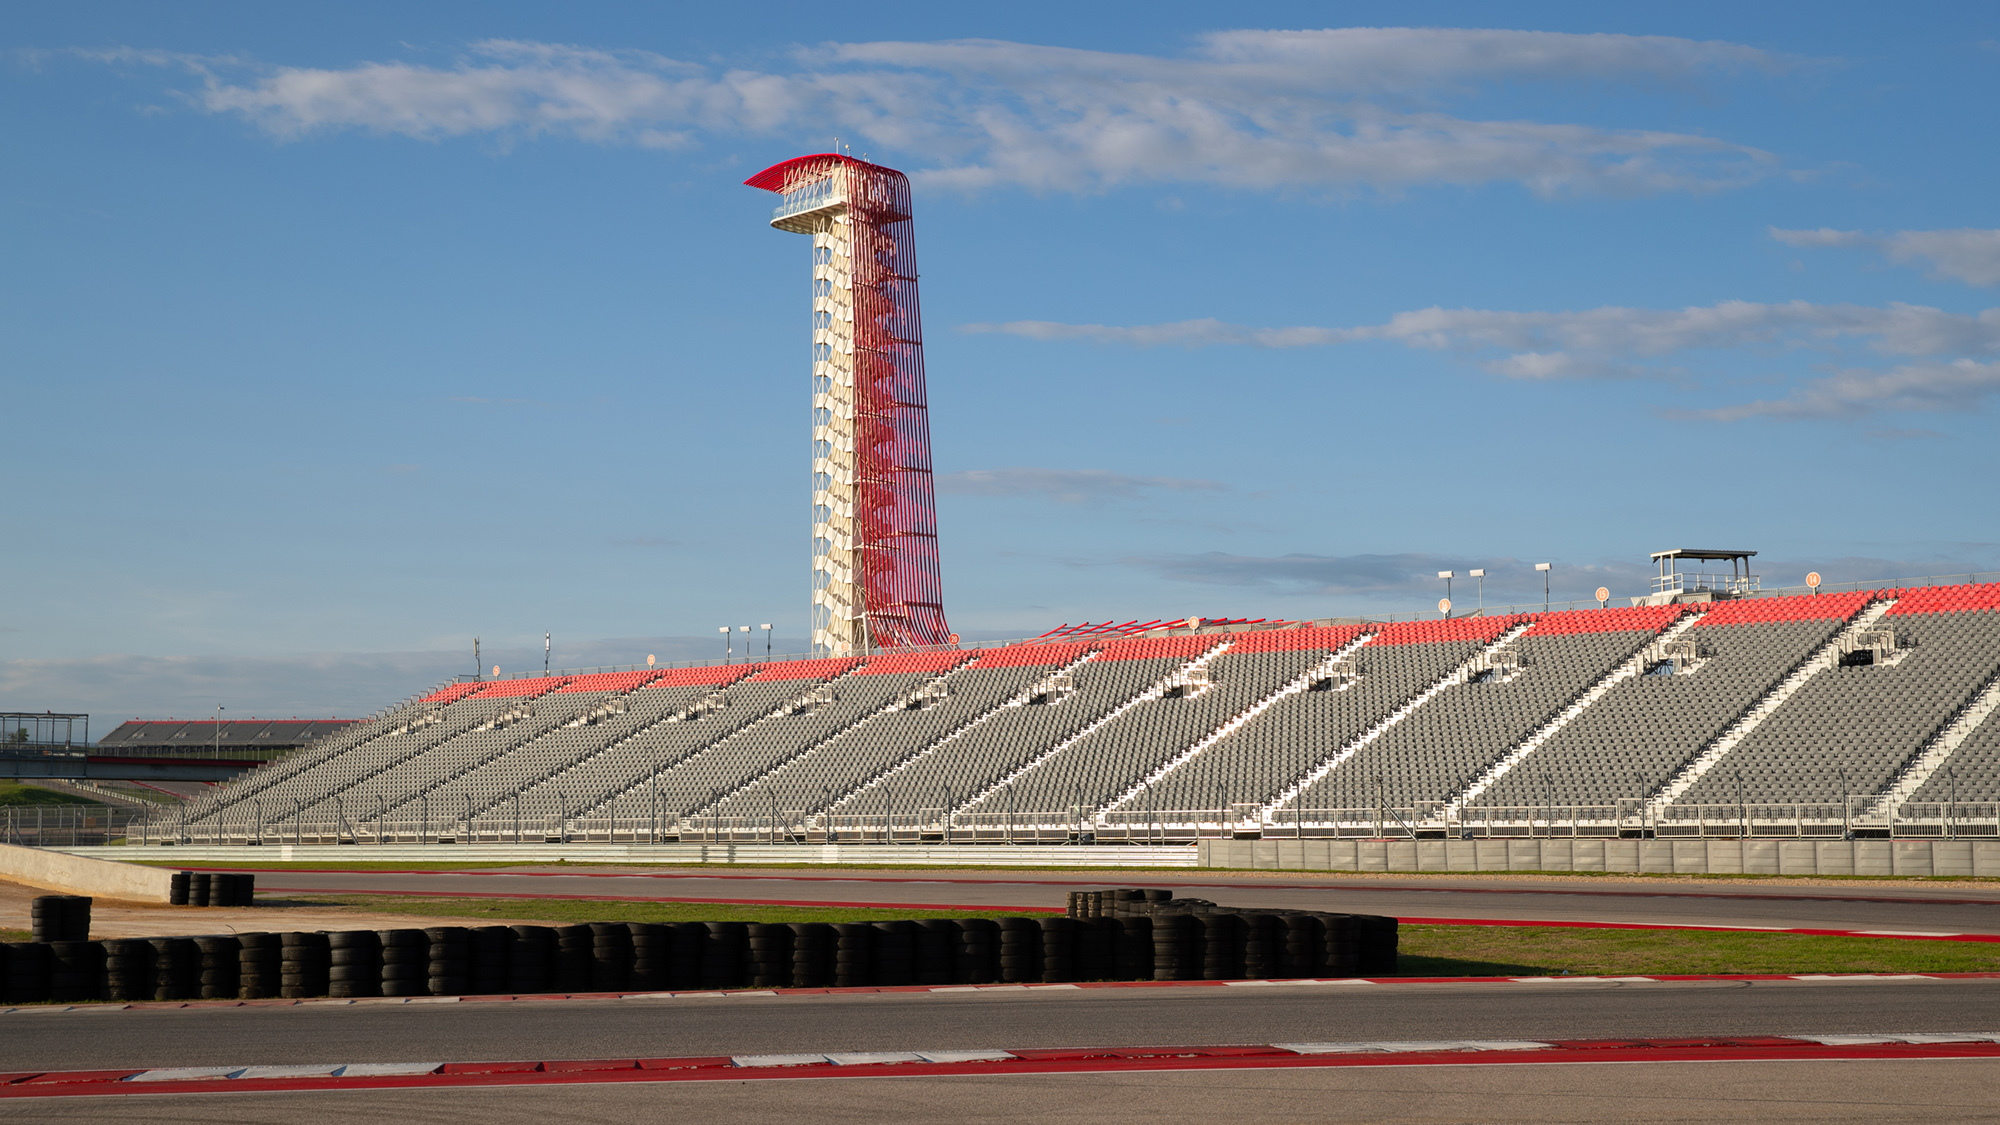 The FIA World Rallycross Championship comes to the States at COTA